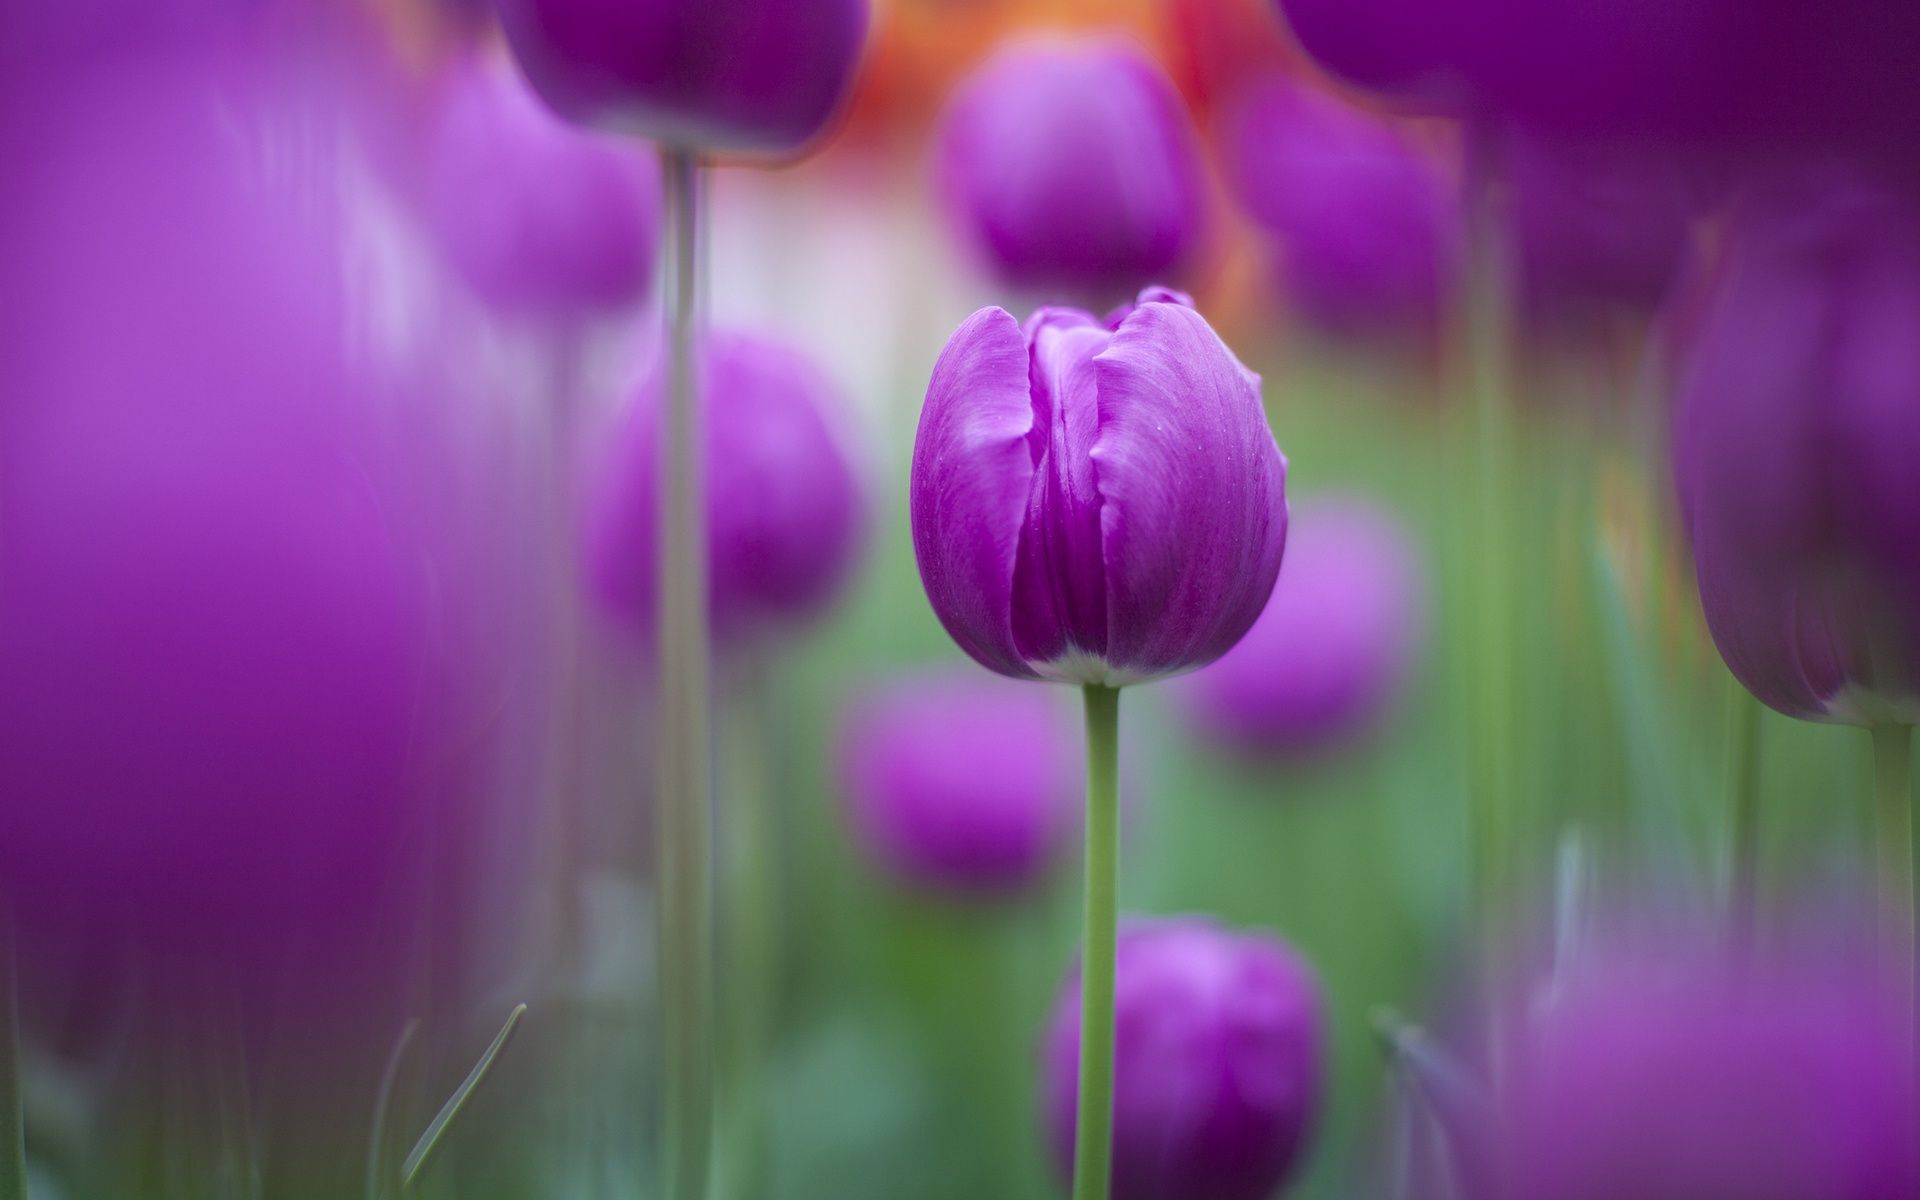 Purple tulips hd desktop wallpapers pinterest purple wallpaper spring tulips wallpaper flowers nature wallpapers wallpapers and backgrounds thecheapjerseys